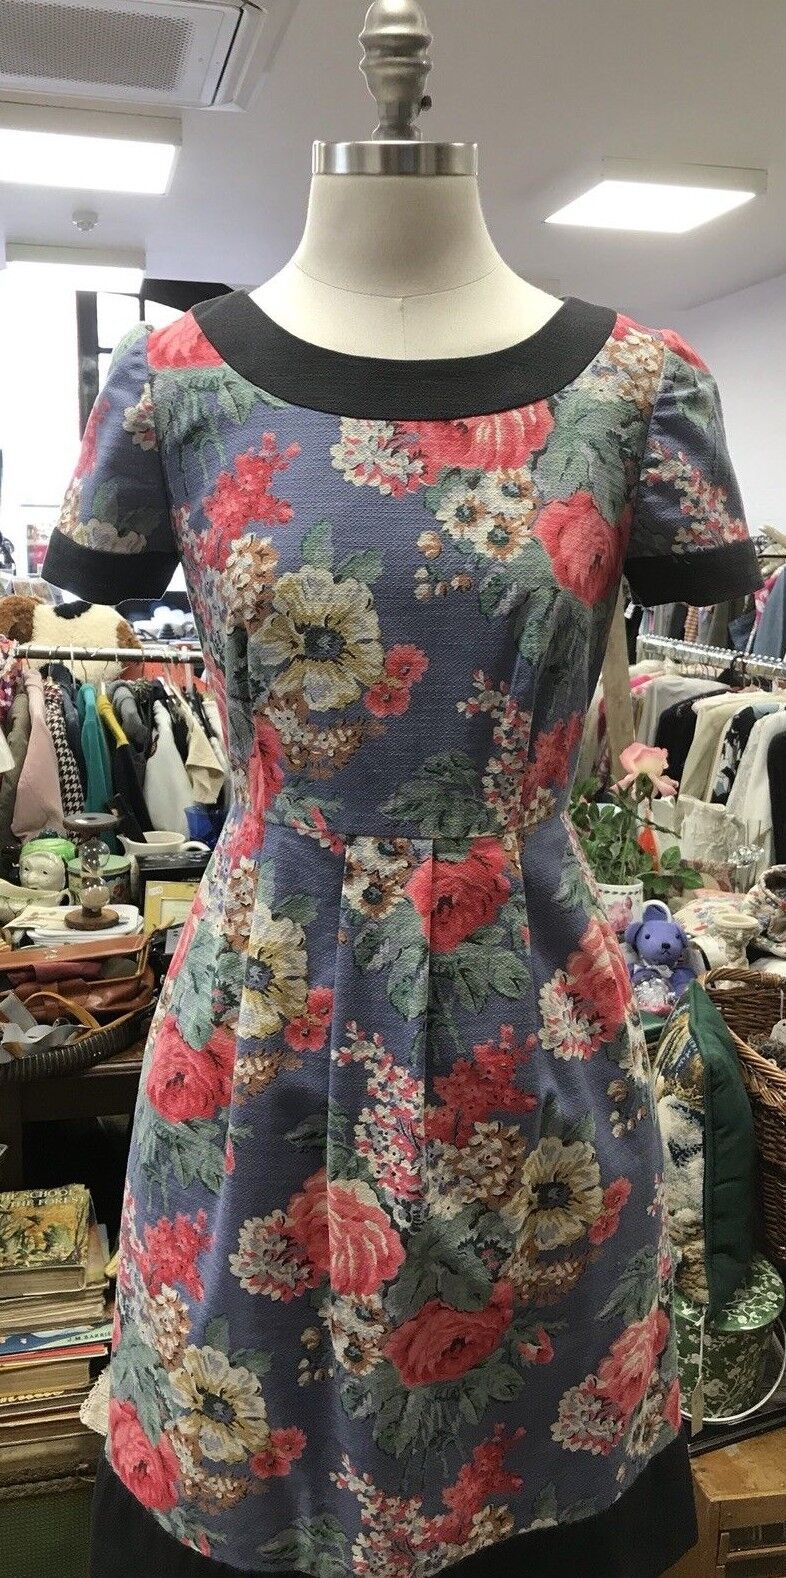 Cath Kidston bluee Floral Dress Size 8, with Grey Trim - new without tags